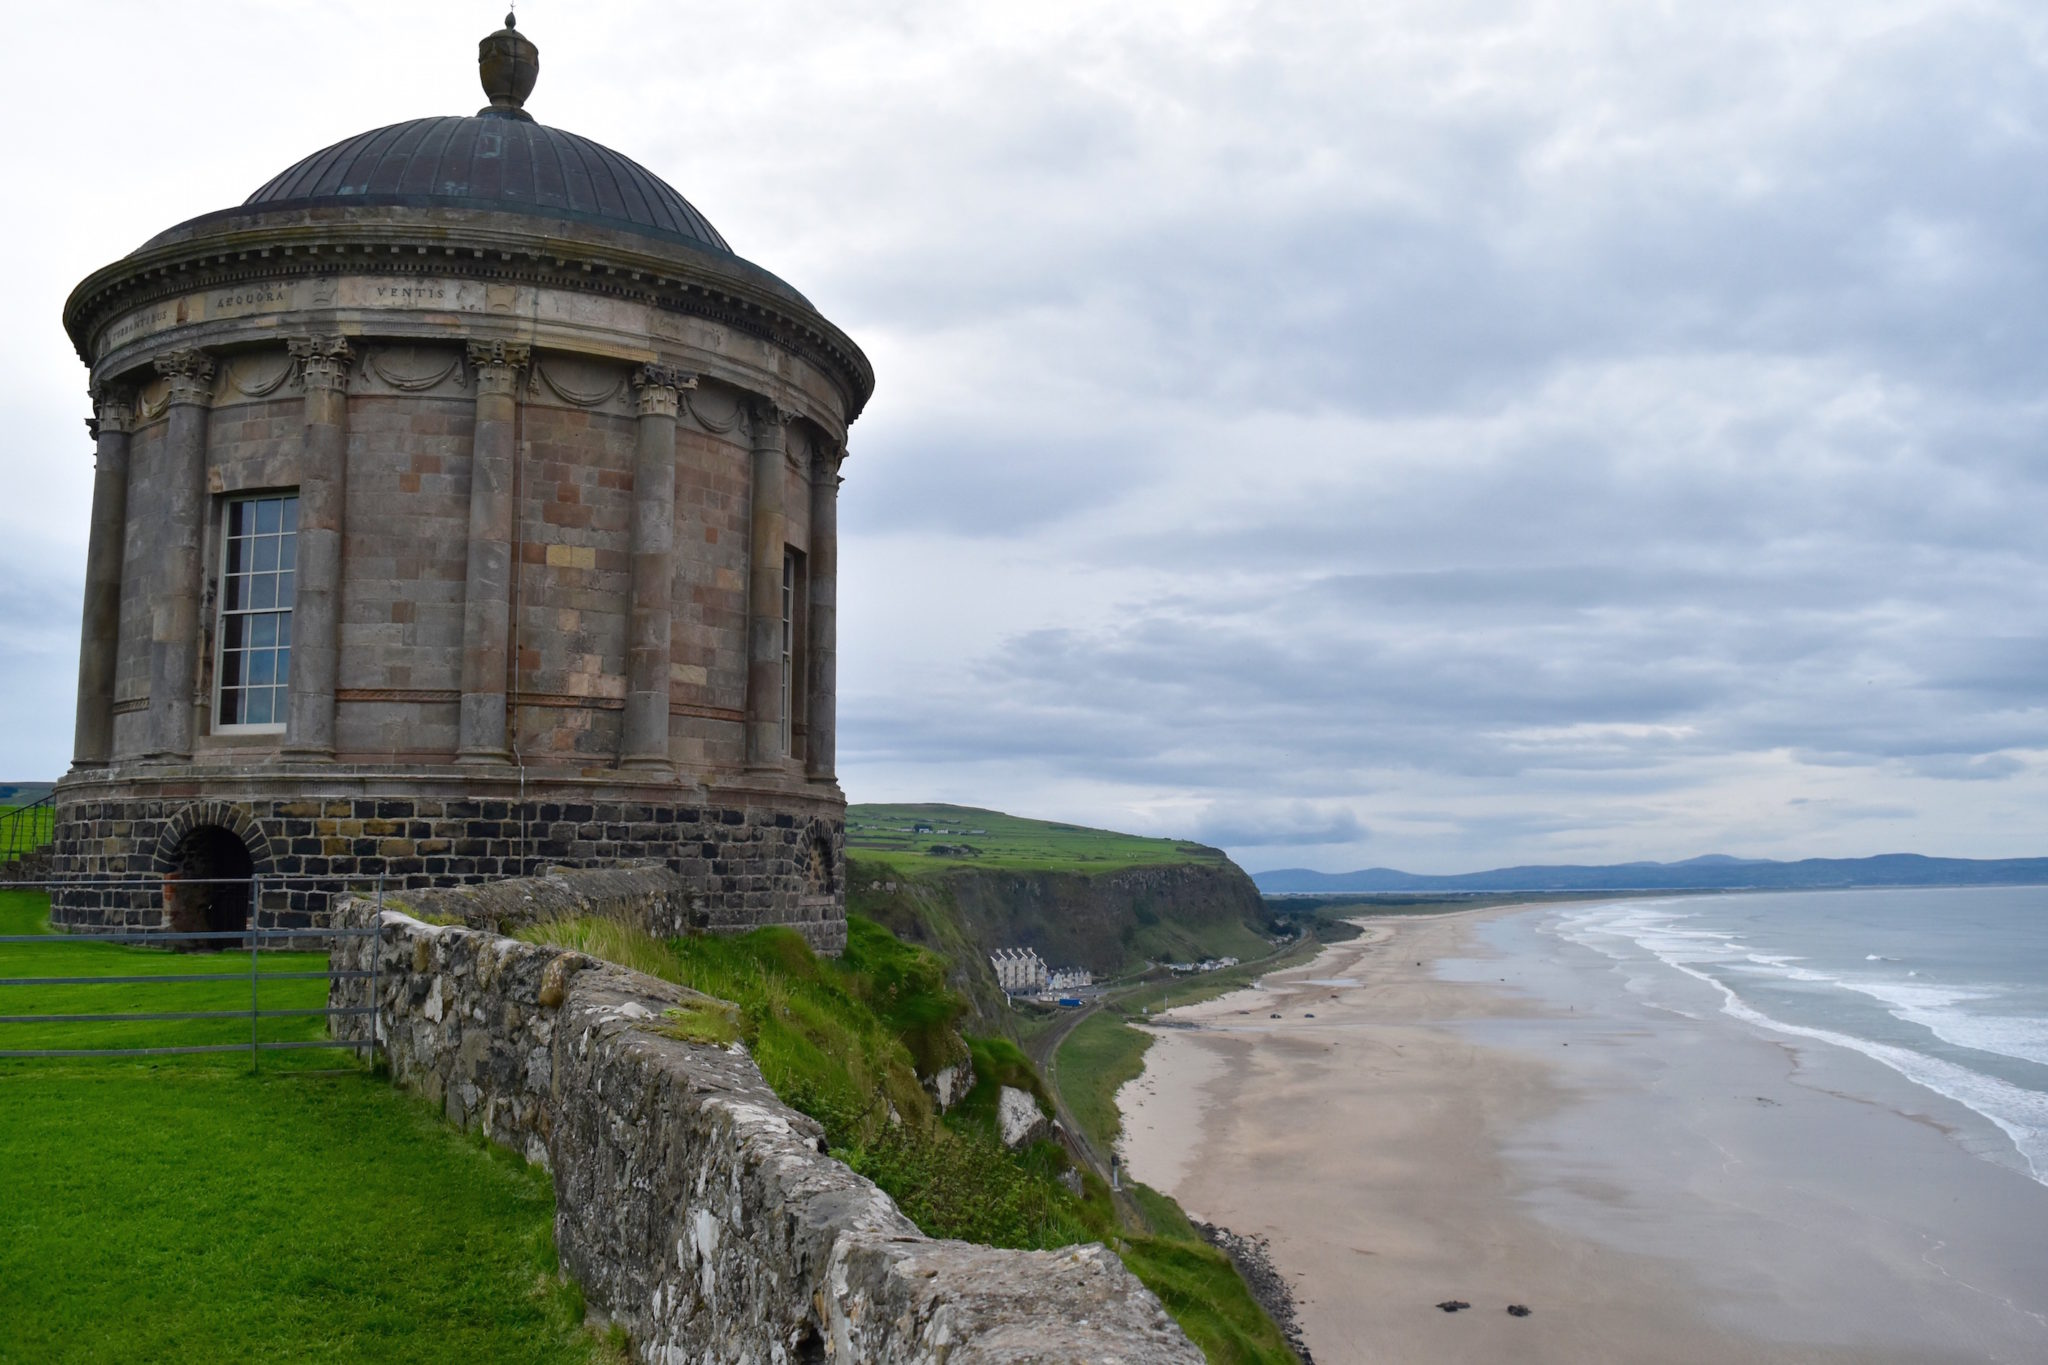 a-lovely-planet-mussenden-temple